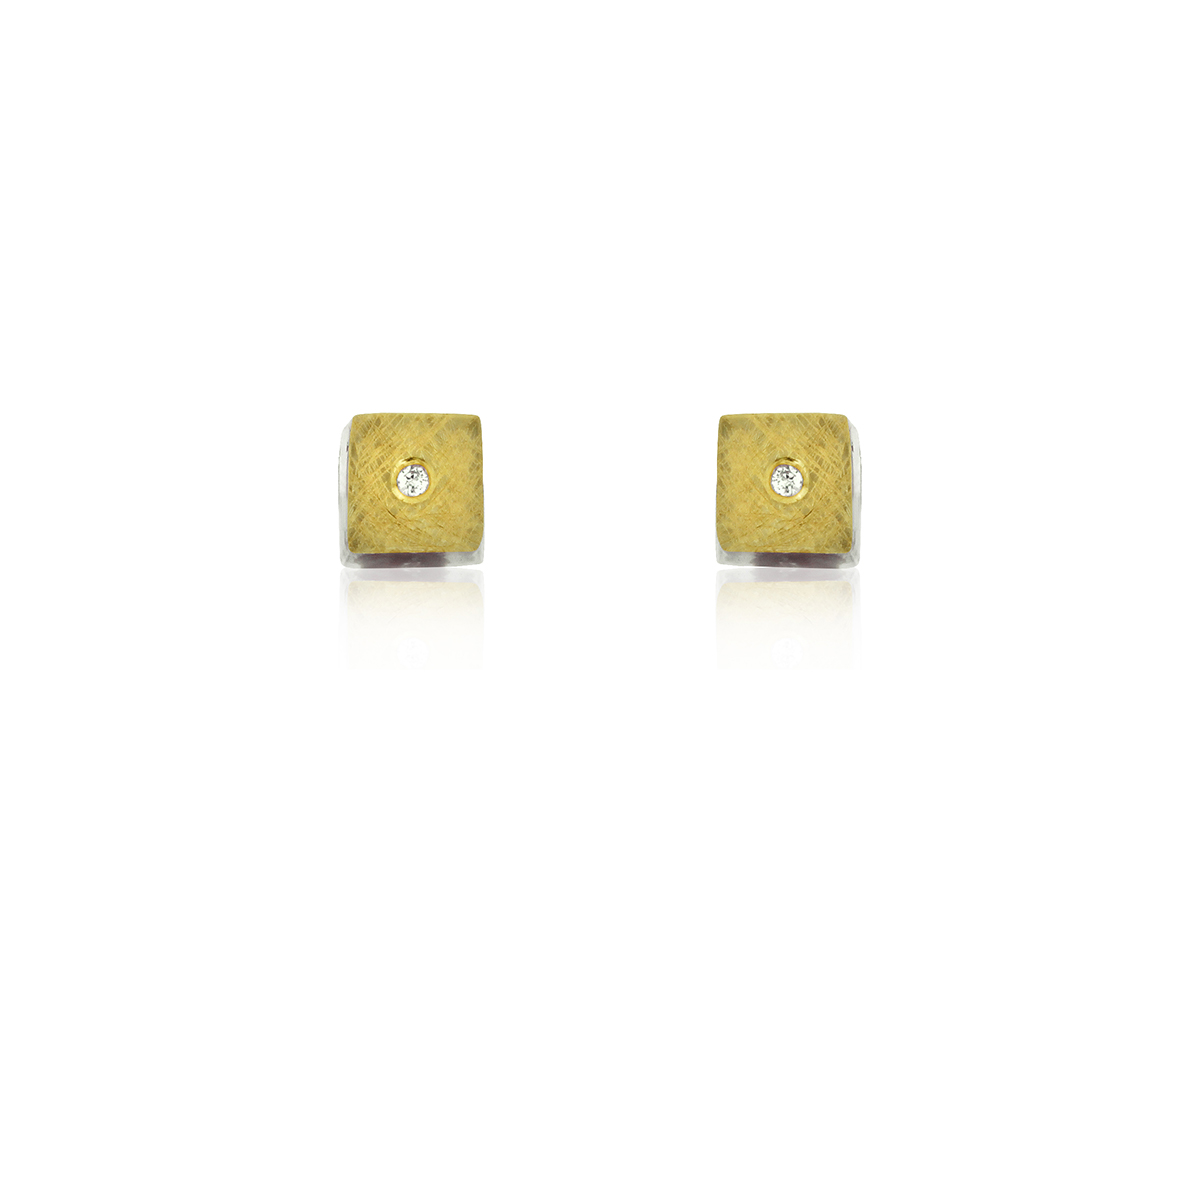 SILVER & GOLD EARRINGS w/ DIAMONDS. E1743D